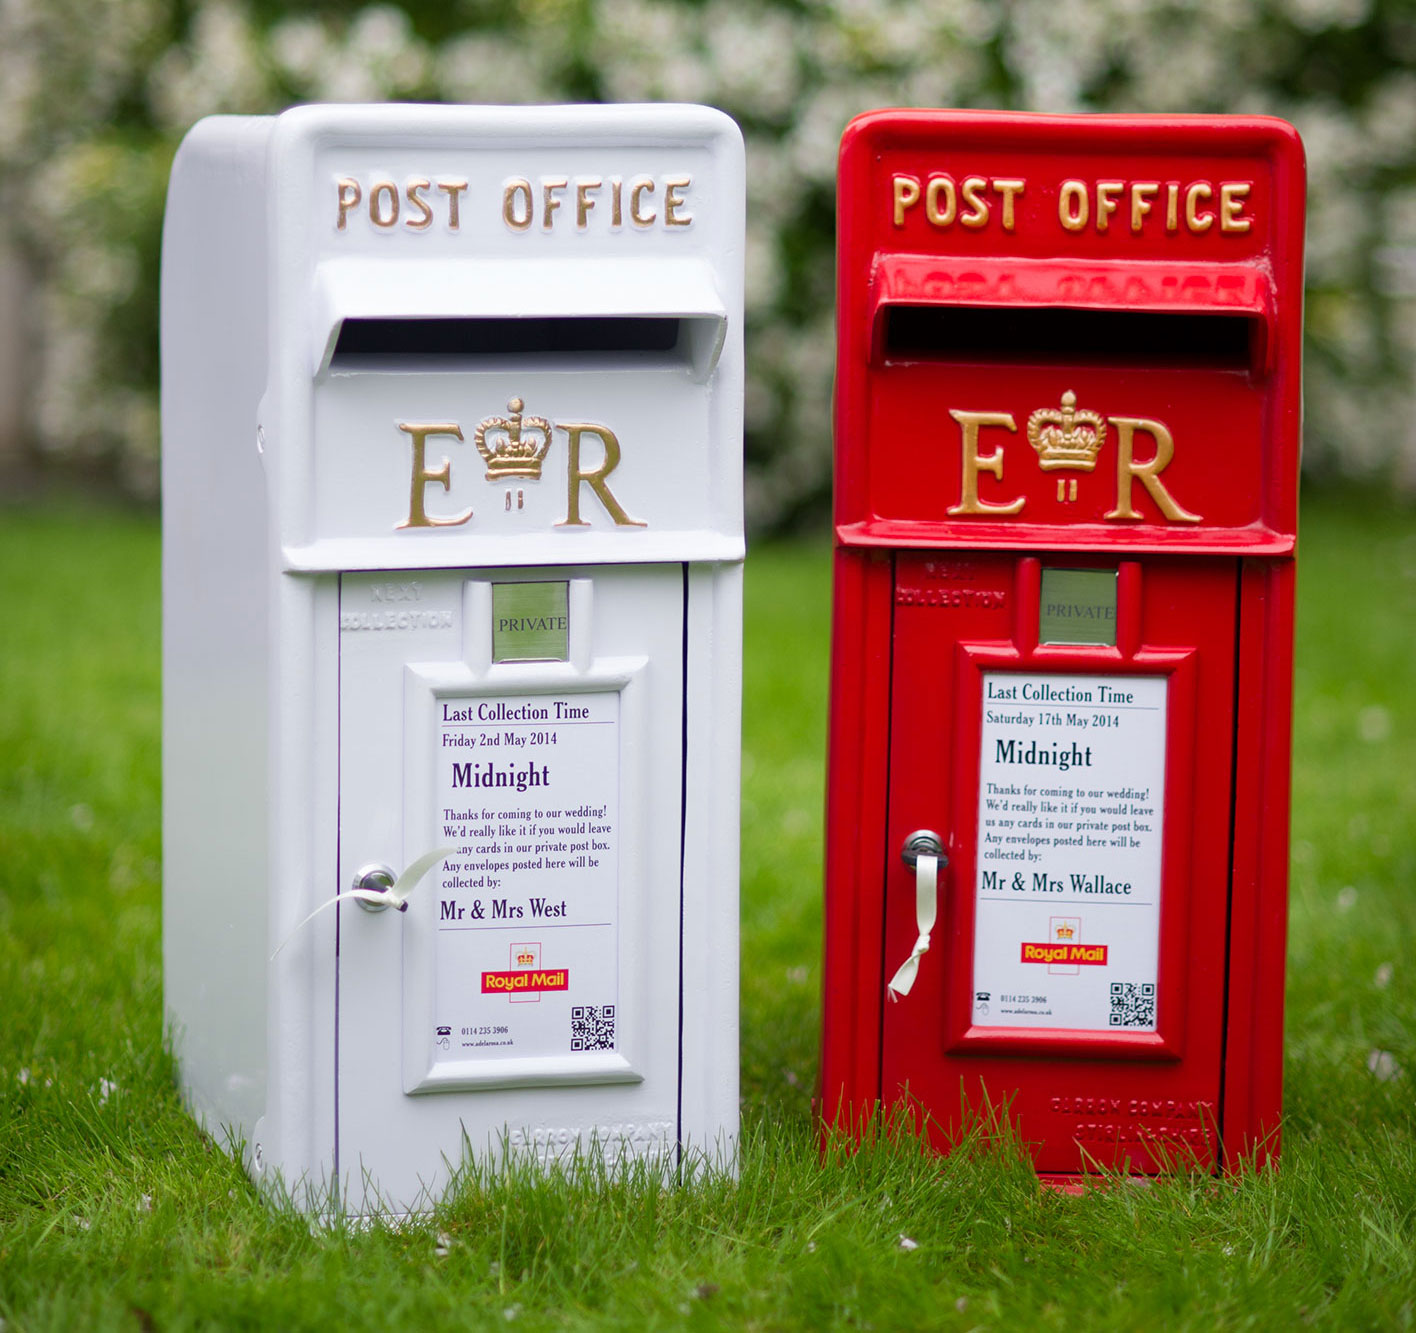 Wedding Gift Post Boxes Uk : Wedding celebration & Wedding Post BoxesWedding BlogsProject ...